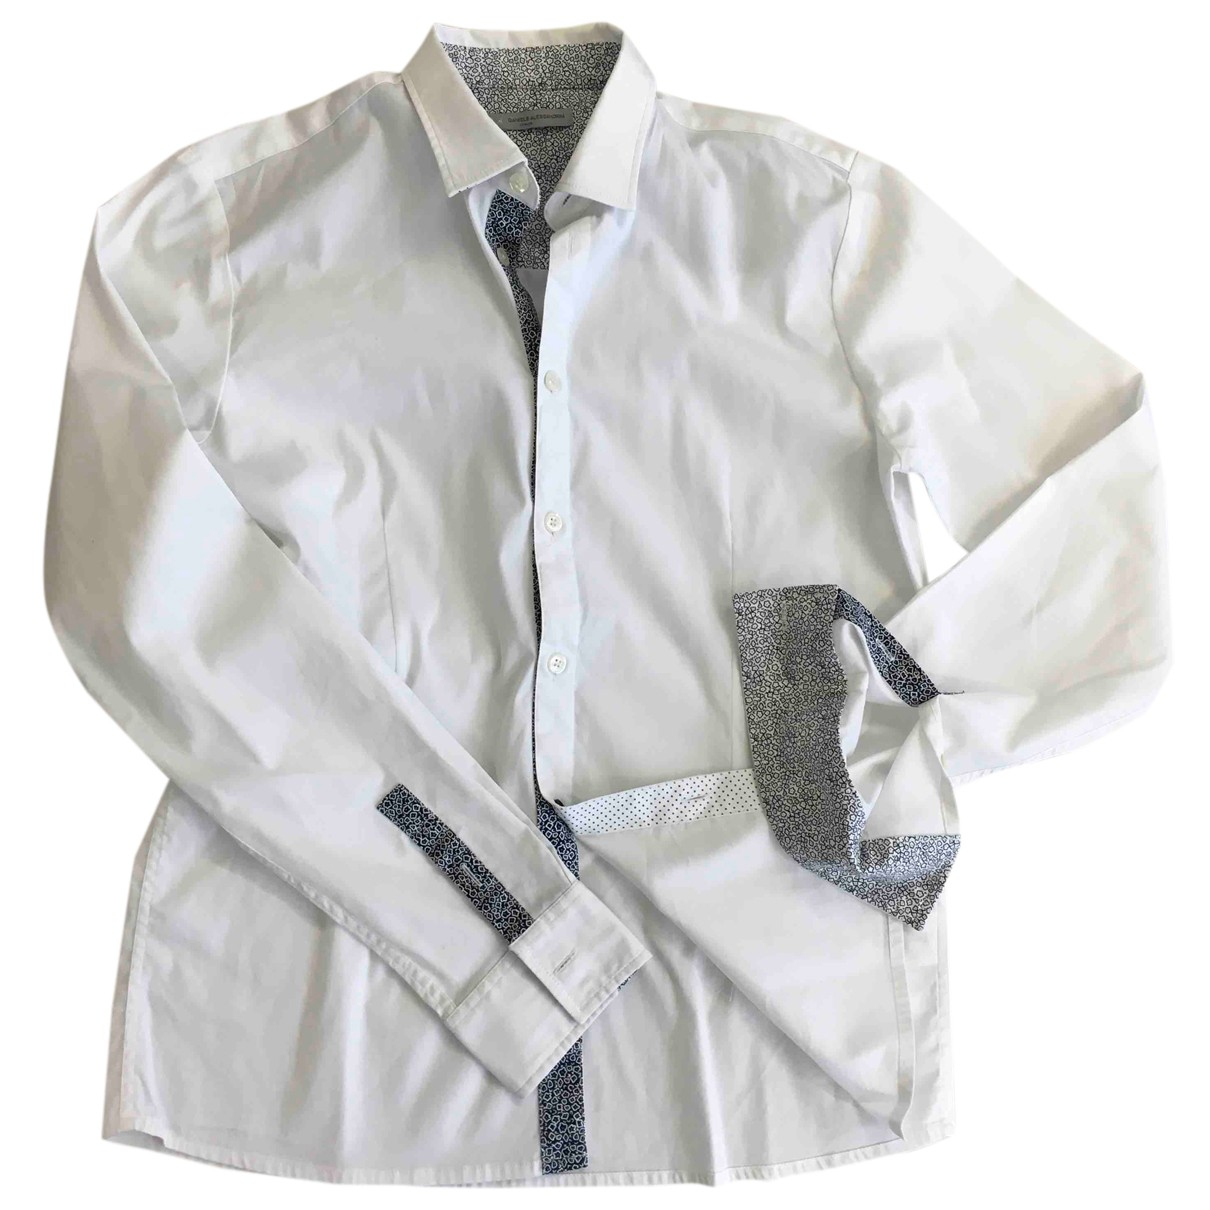 Daniele Alessandrini N White Cotton  top for Kids 16 years - M FR